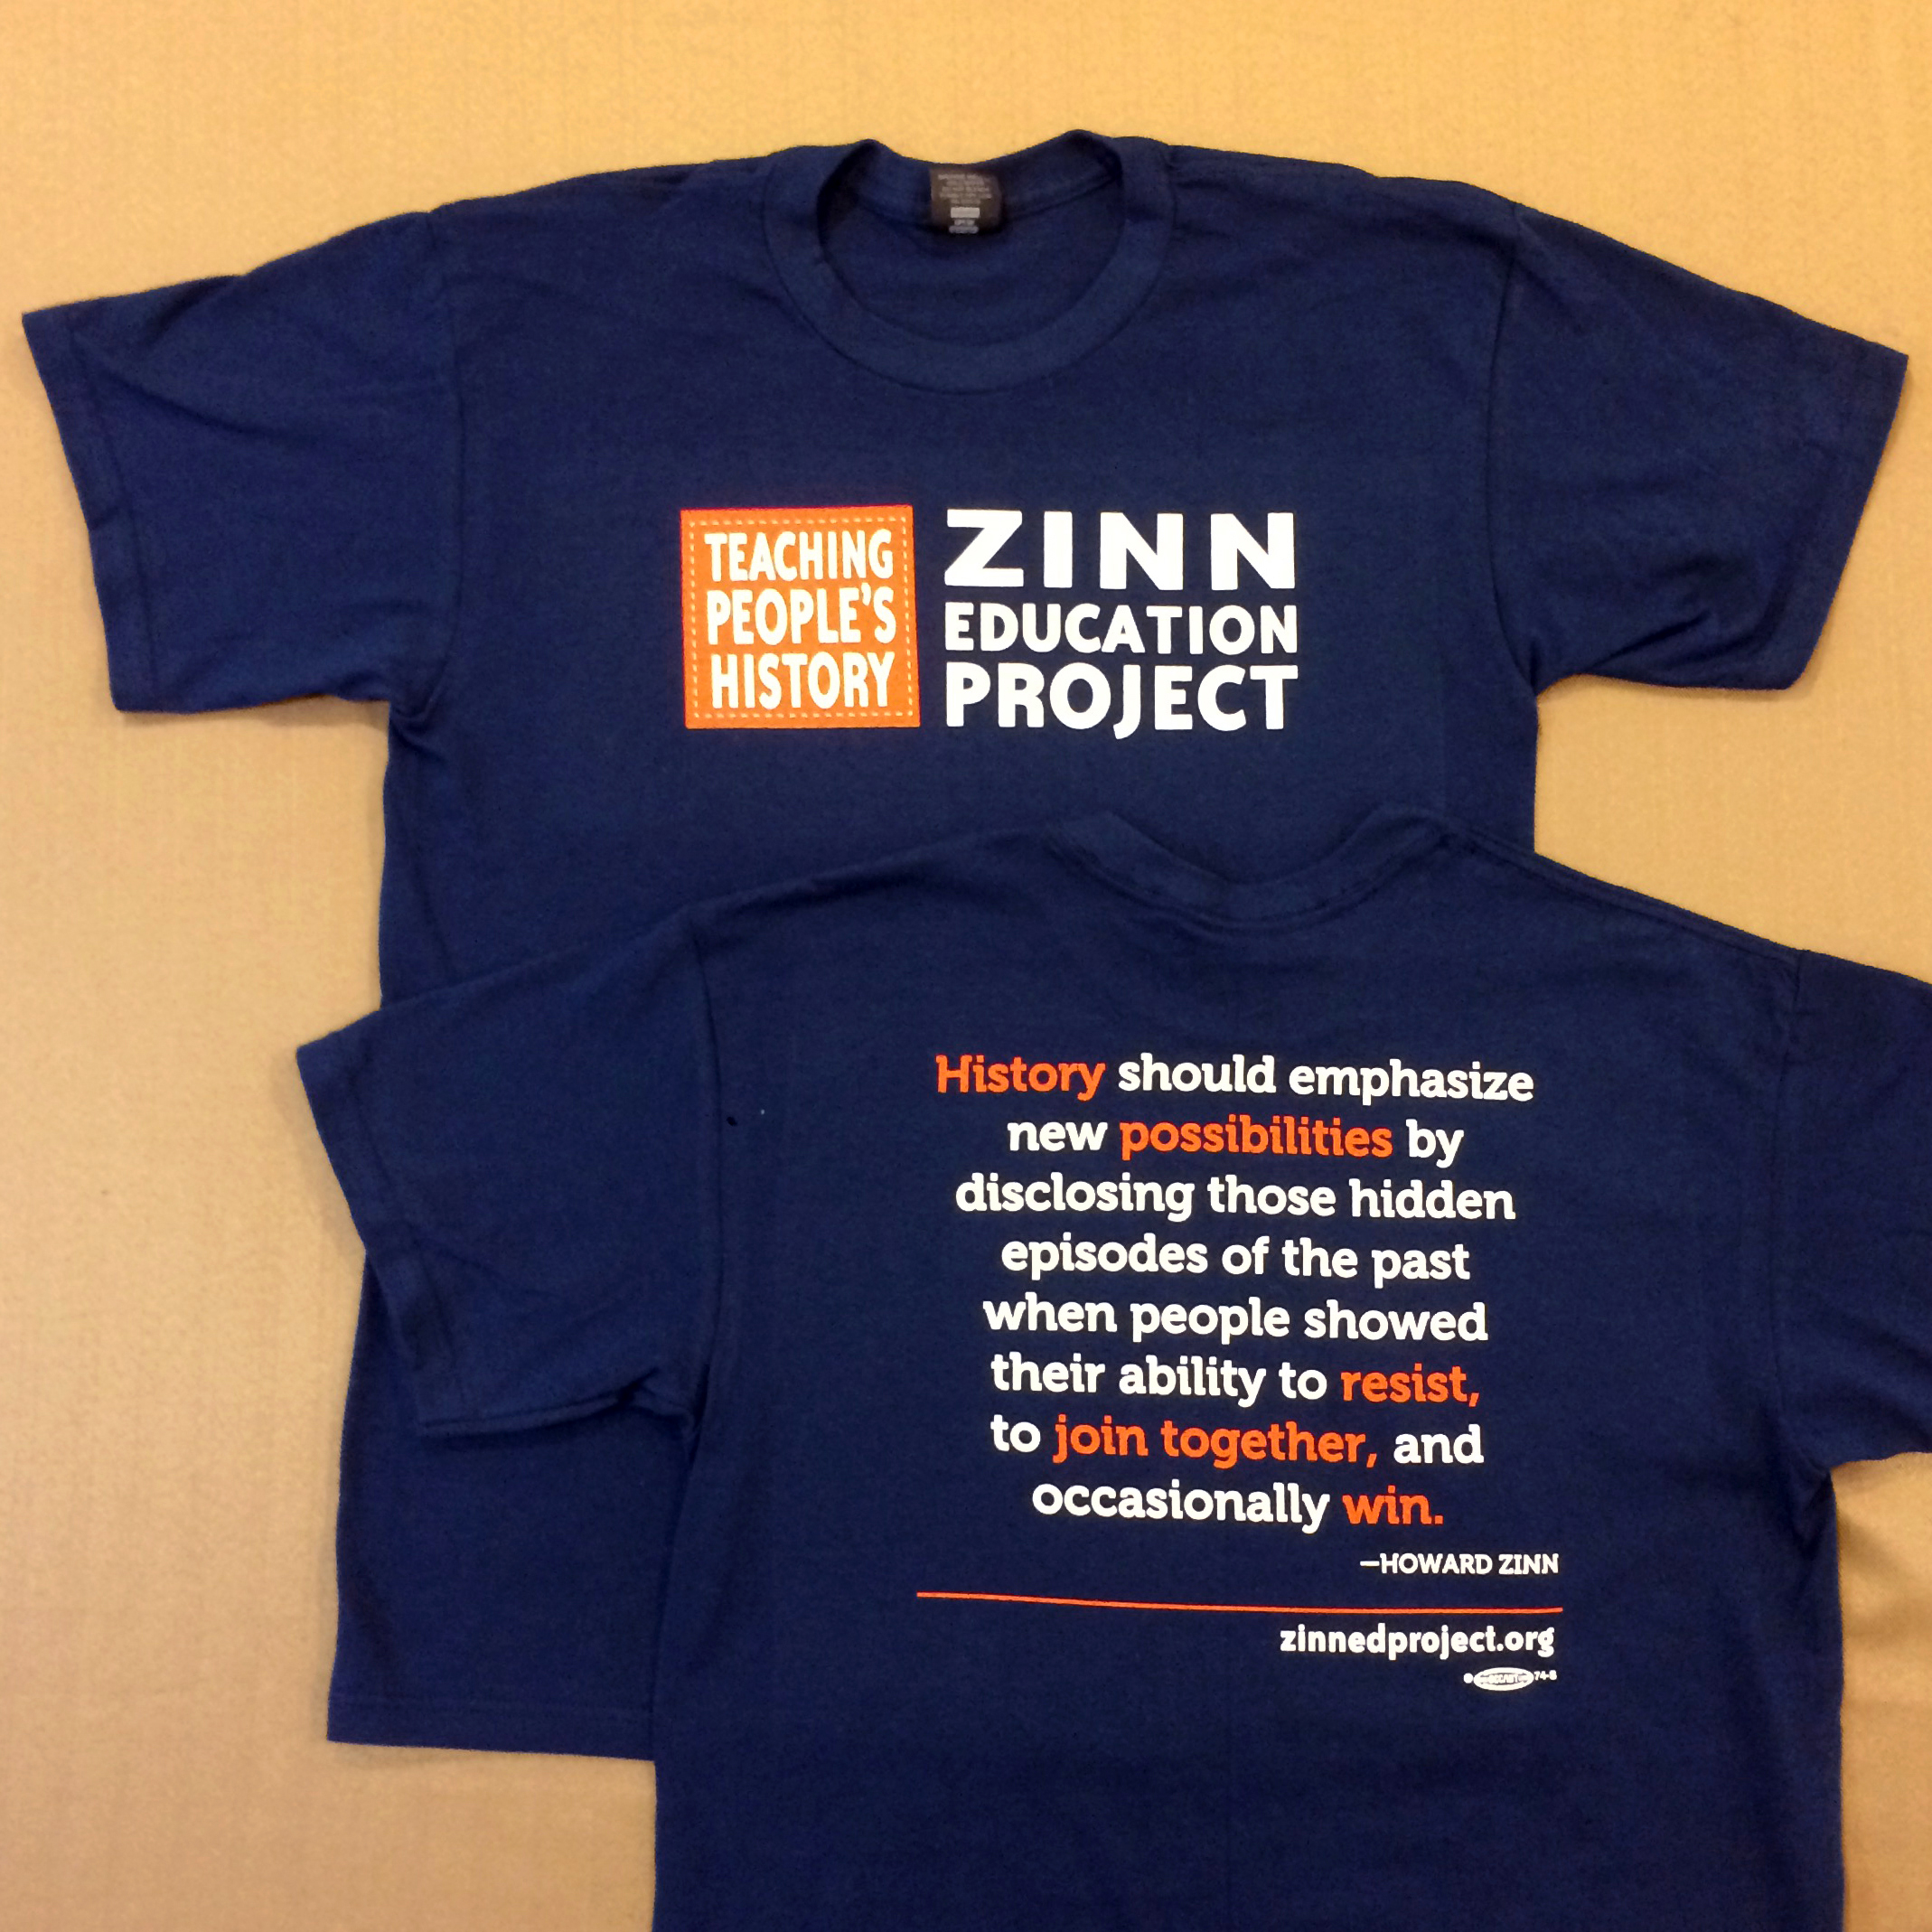 Shirts | Zinn Education Project: Teaching People's History